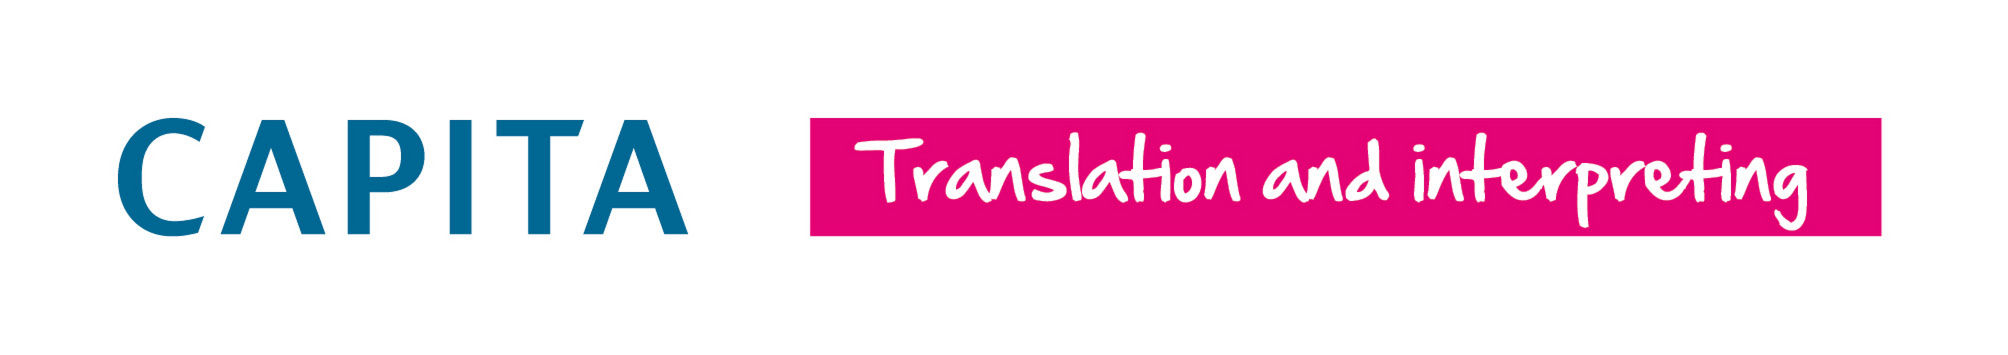 Capita Translation and Interpreting